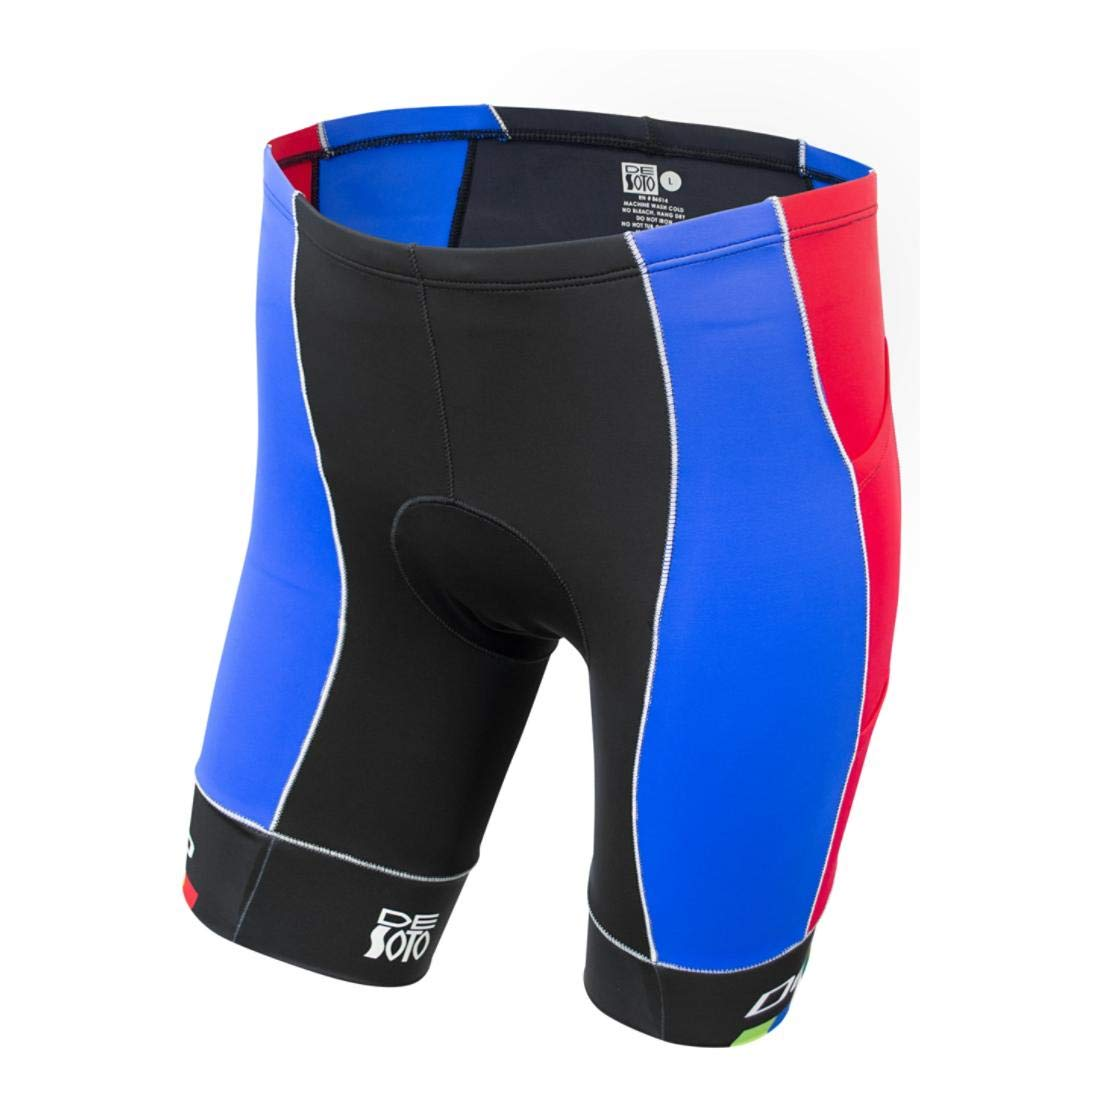 春早割 De SotoスポーツMobius Tri Short Leg 4-pocket – Leg MTF – – 2018 B07GHPKHX4 Red/Blue/De Soto Leg Band X-Large X-Large|Red/Blue/De Soto Leg Band, フルーツ SHOMEIDO:5d2a14e3 --- mcrisartesanato.com.br